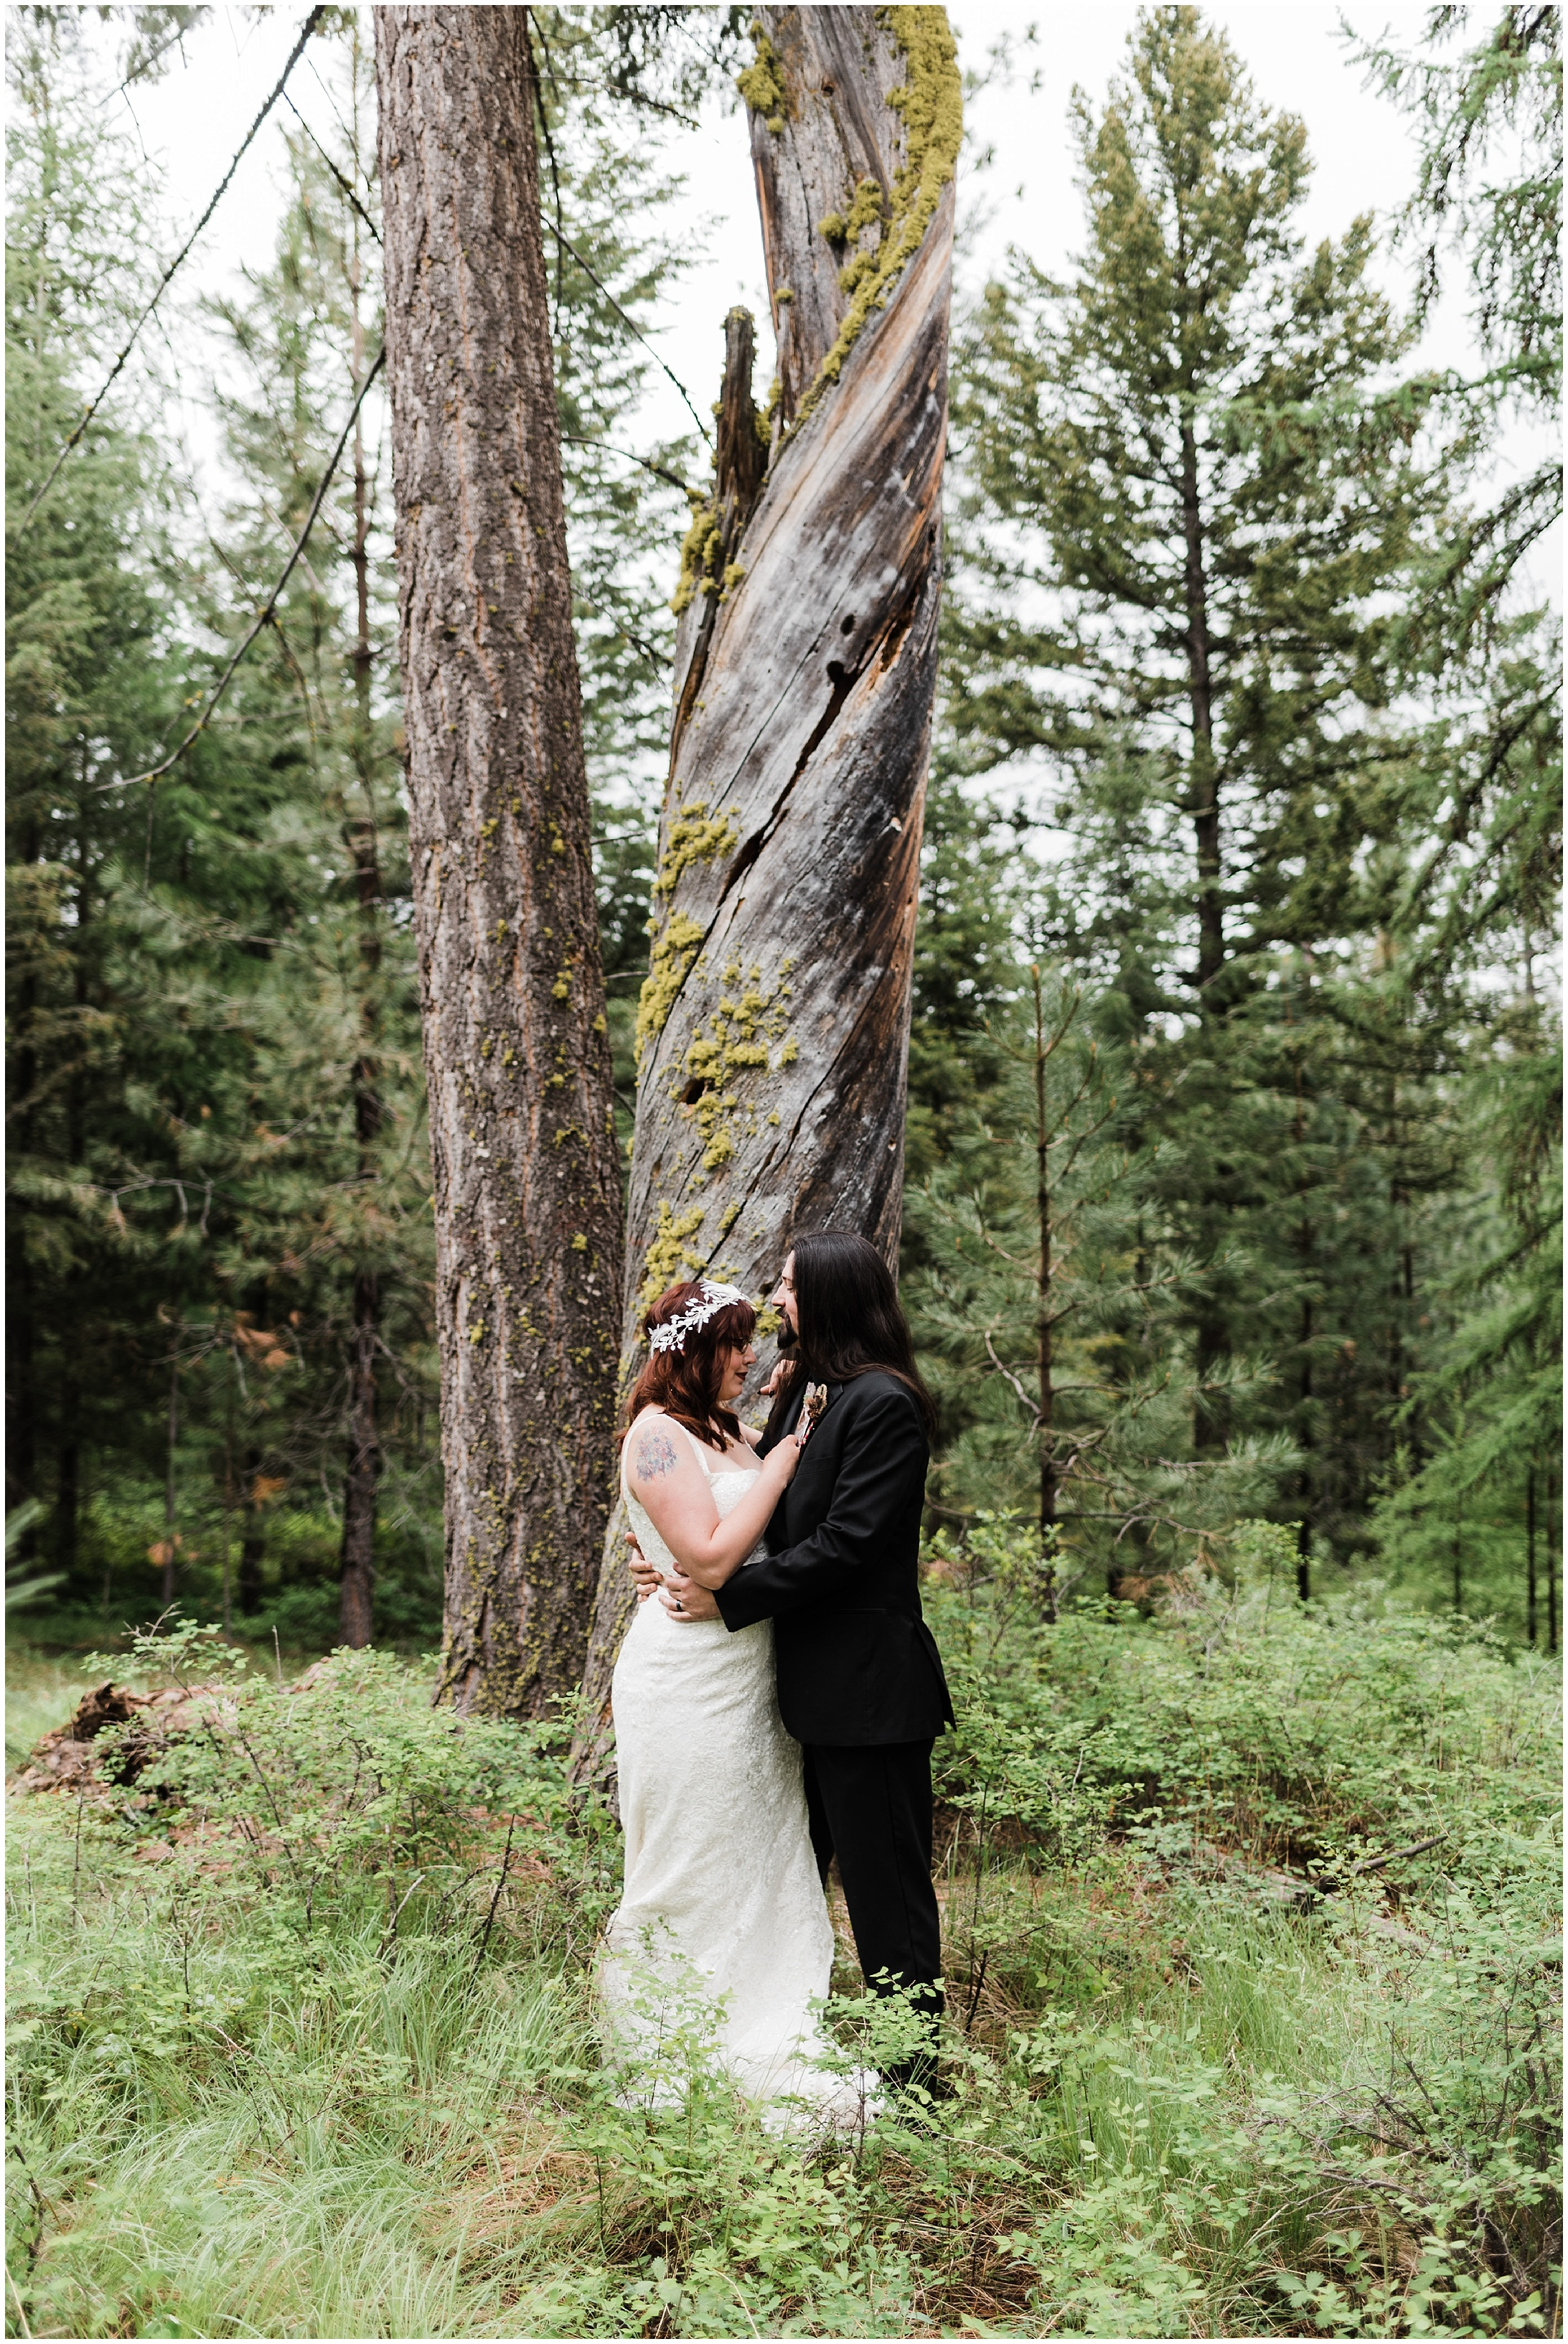 Intimate Forest Wedding in Omak, WA - Forthright Photo